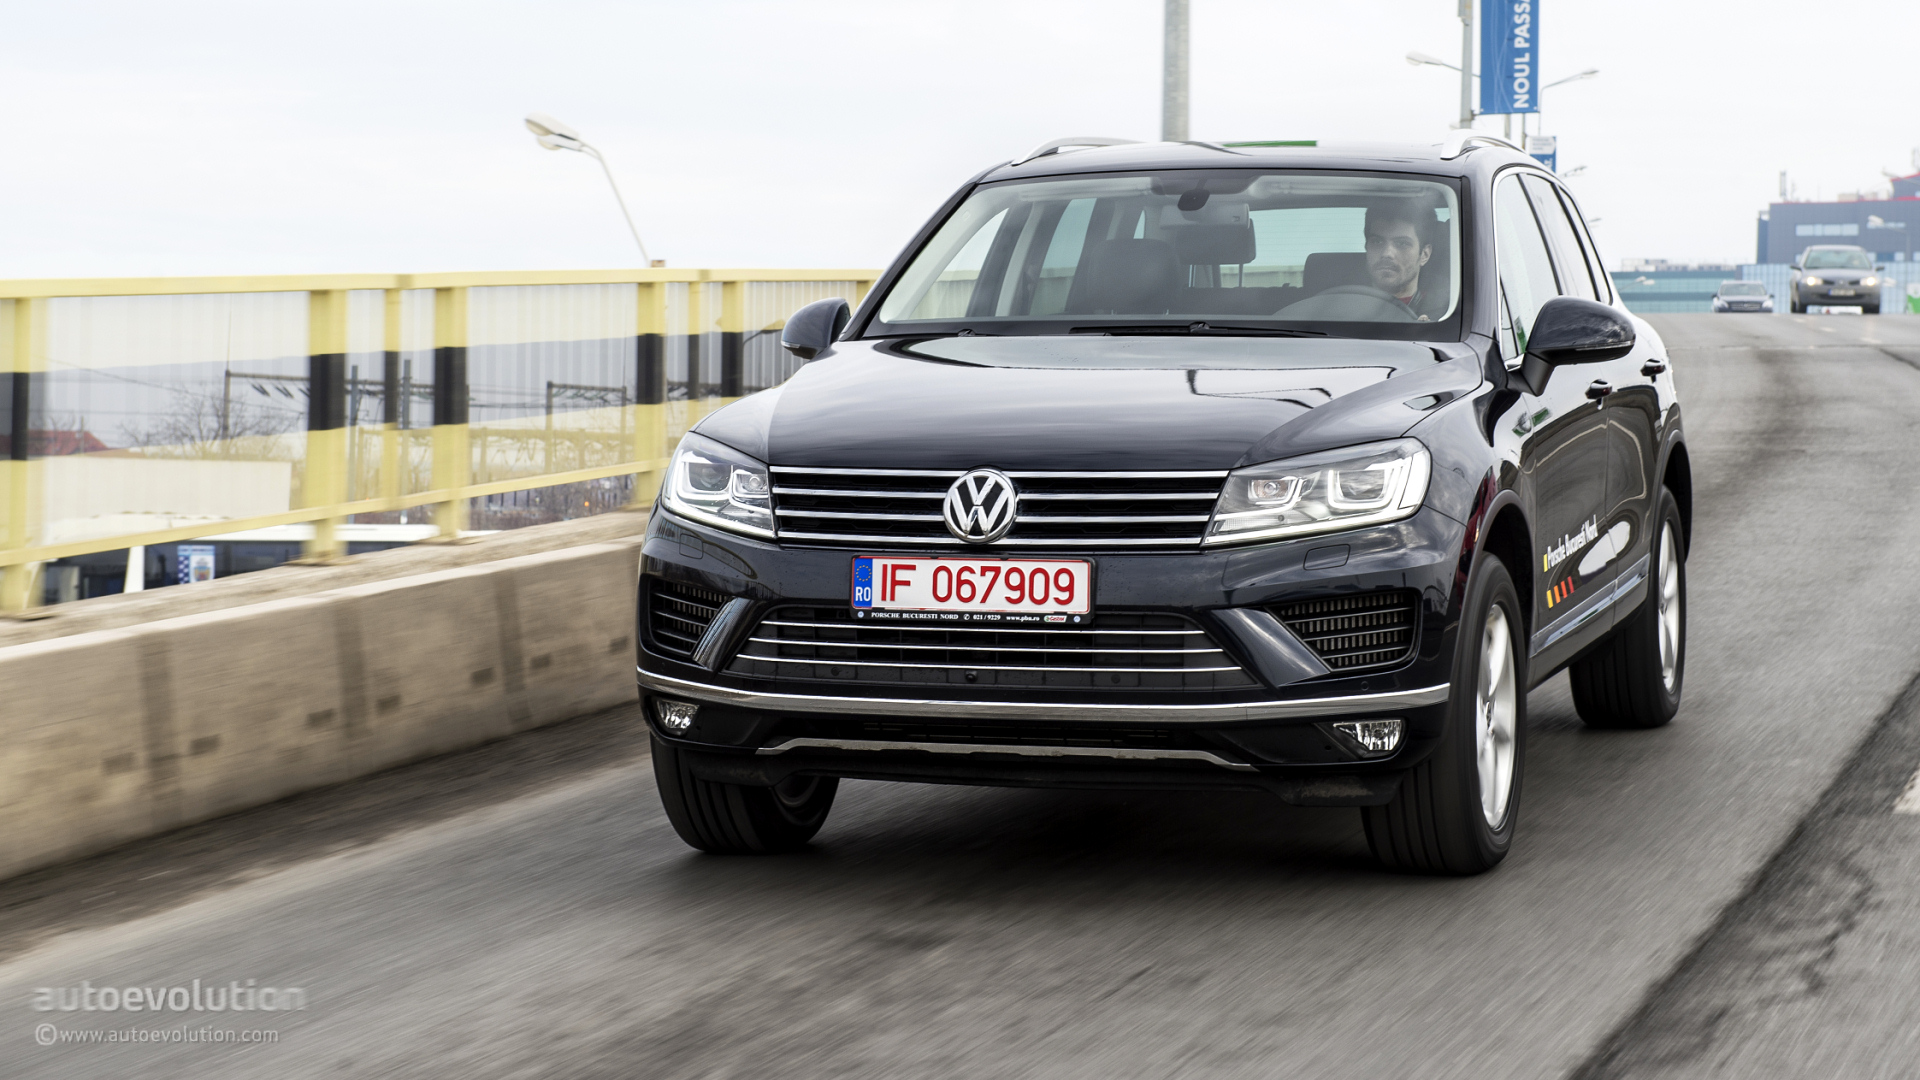 2015 volkswagen touareg facelift tested the all rounder of the segment autoevolution. Black Bedroom Furniture Sets. Home Design Ideas